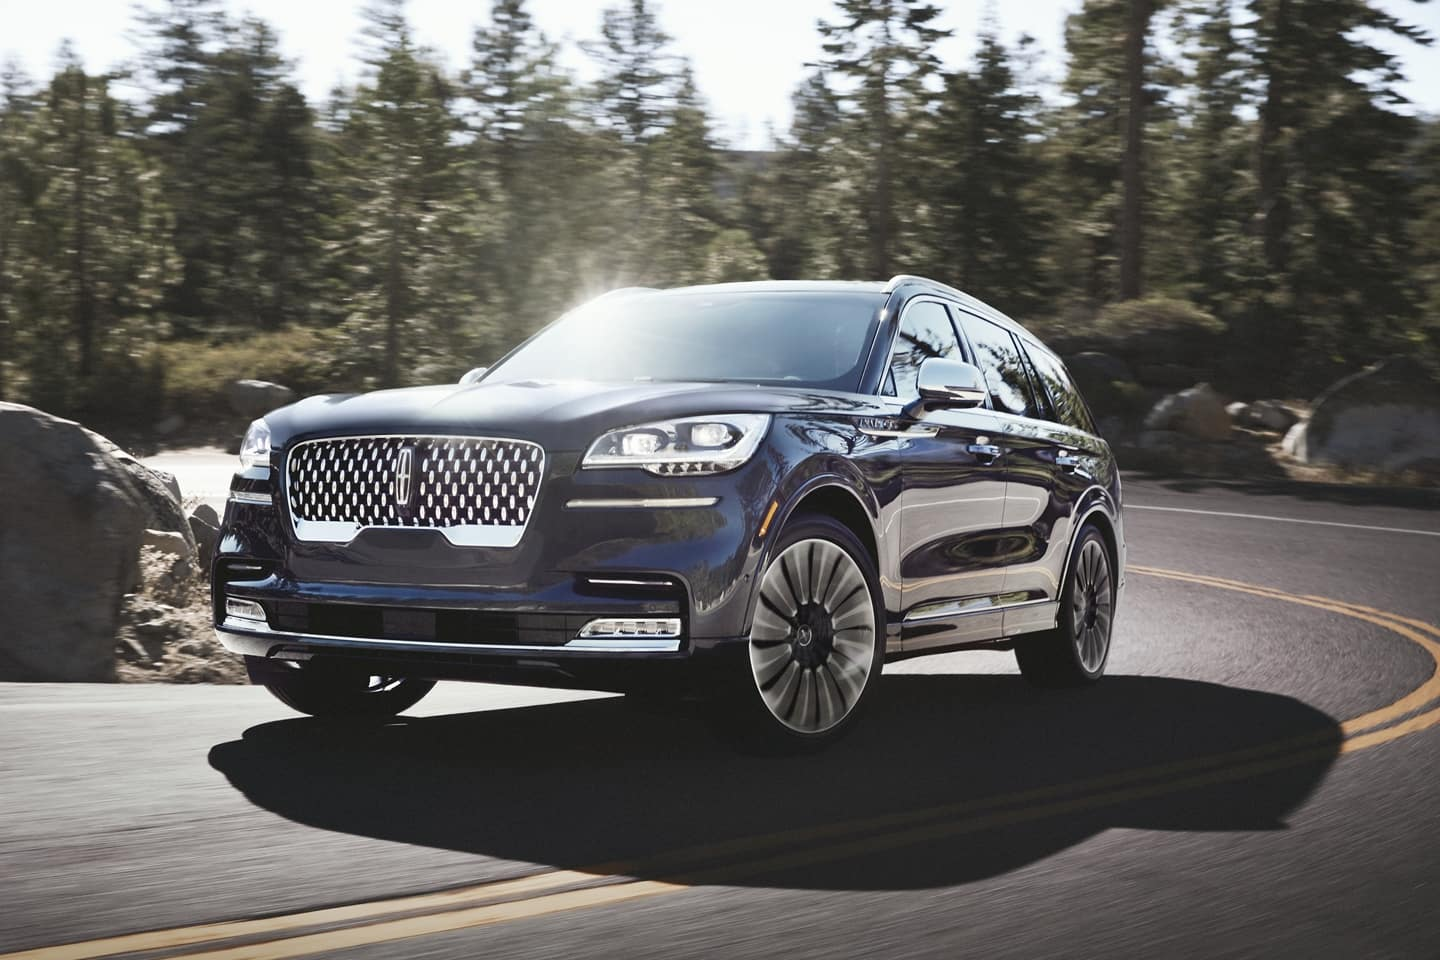 A picture of a New Lincoln Aviator available in Midland-Odessa.